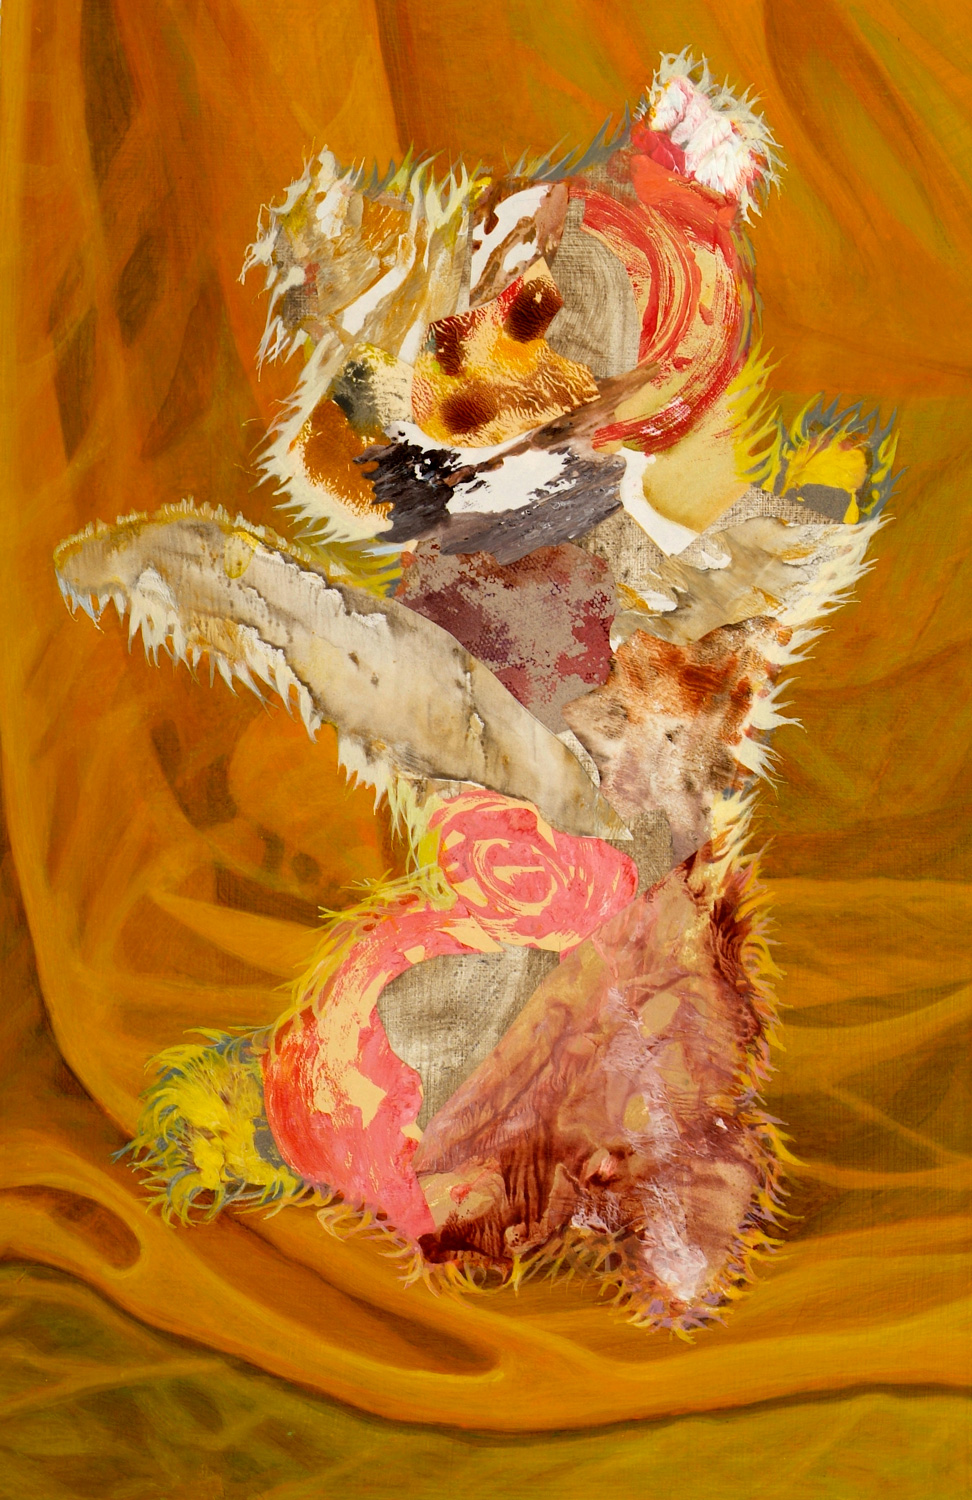 "Chowder, 2005, acrylic, collage on panel, 24"" x 15.75"""